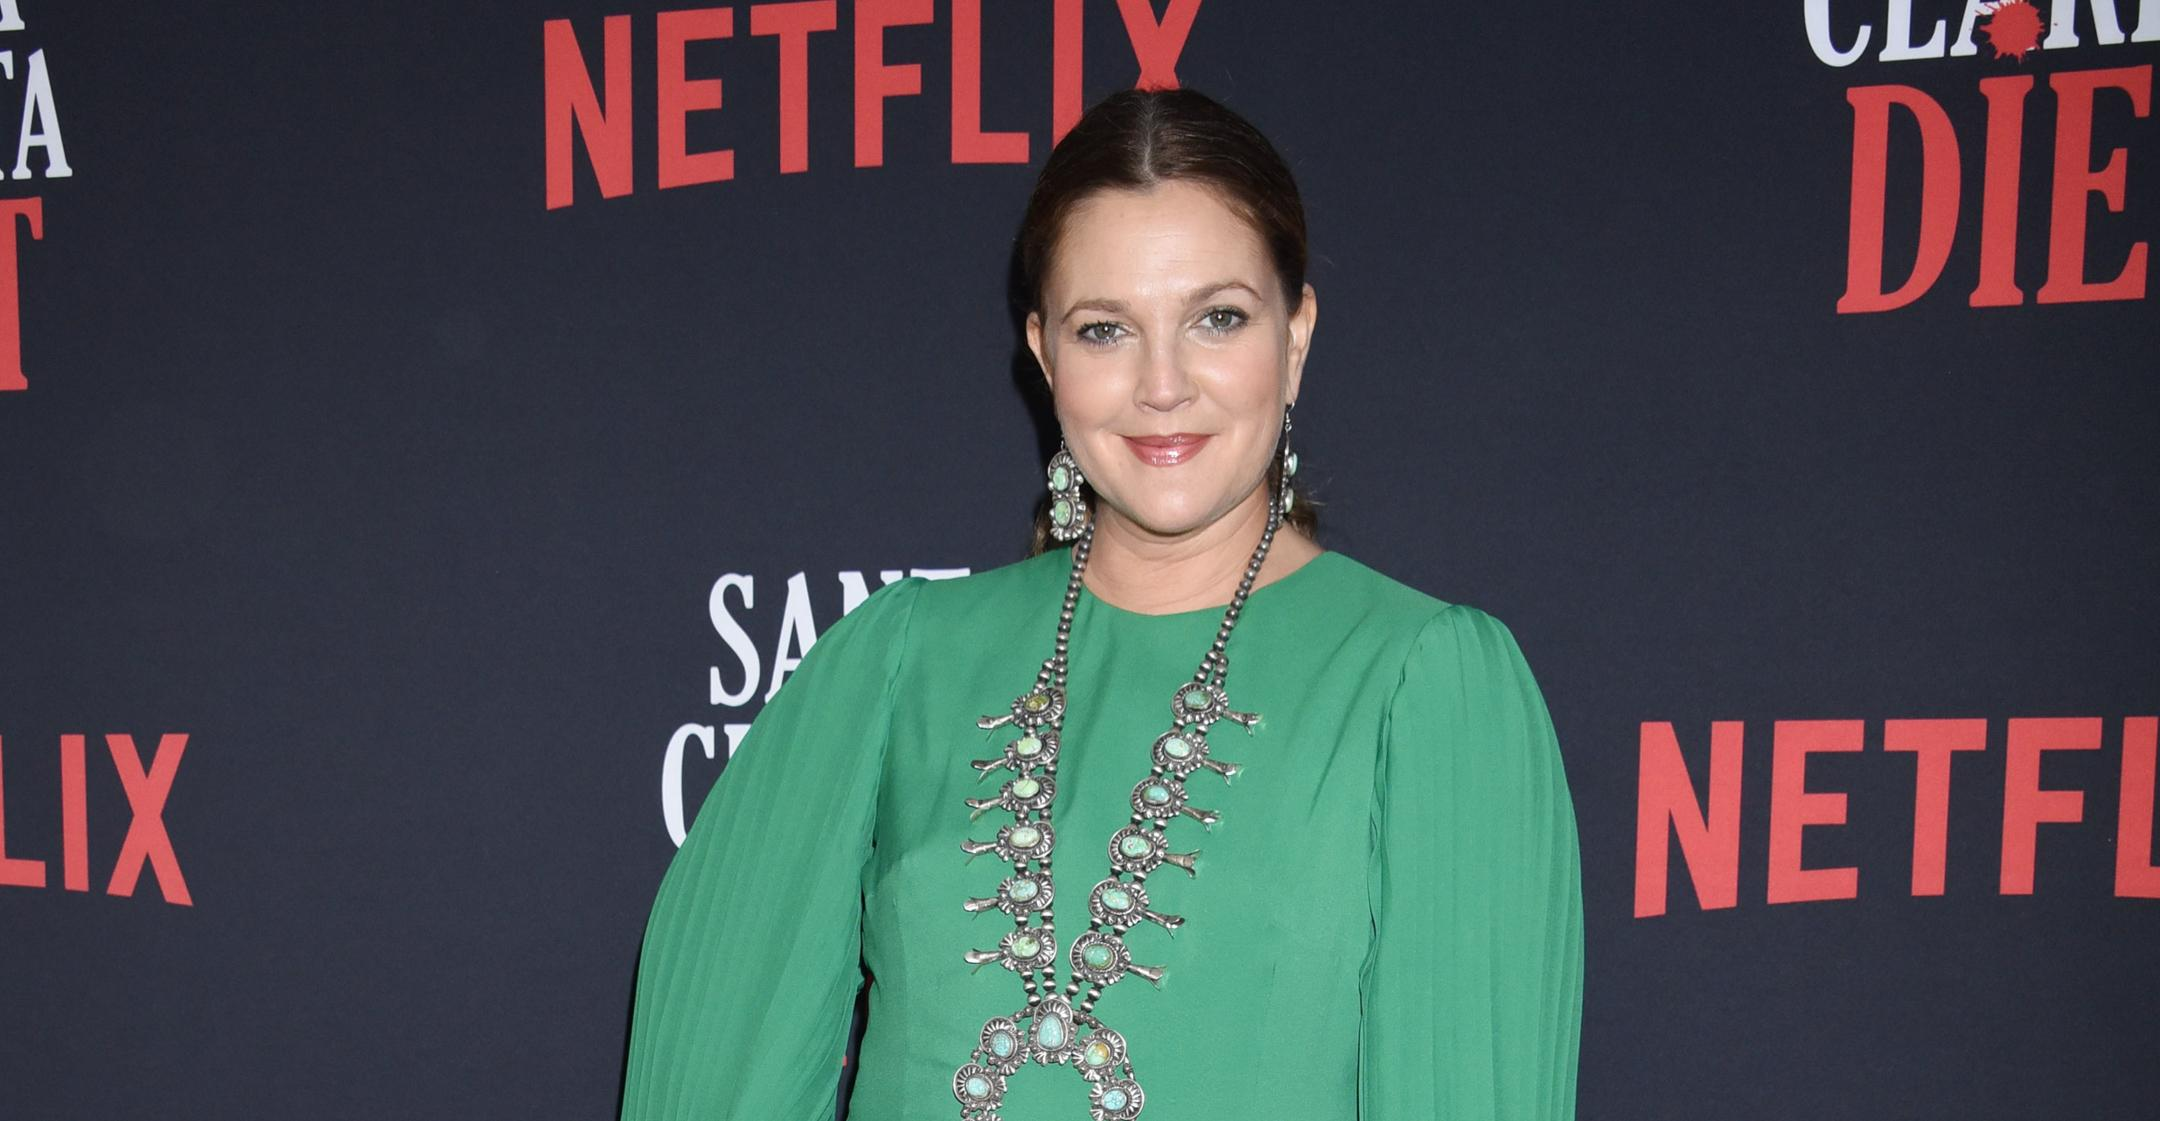 drew barrymore wants her daughters to know shes their parent not their friend